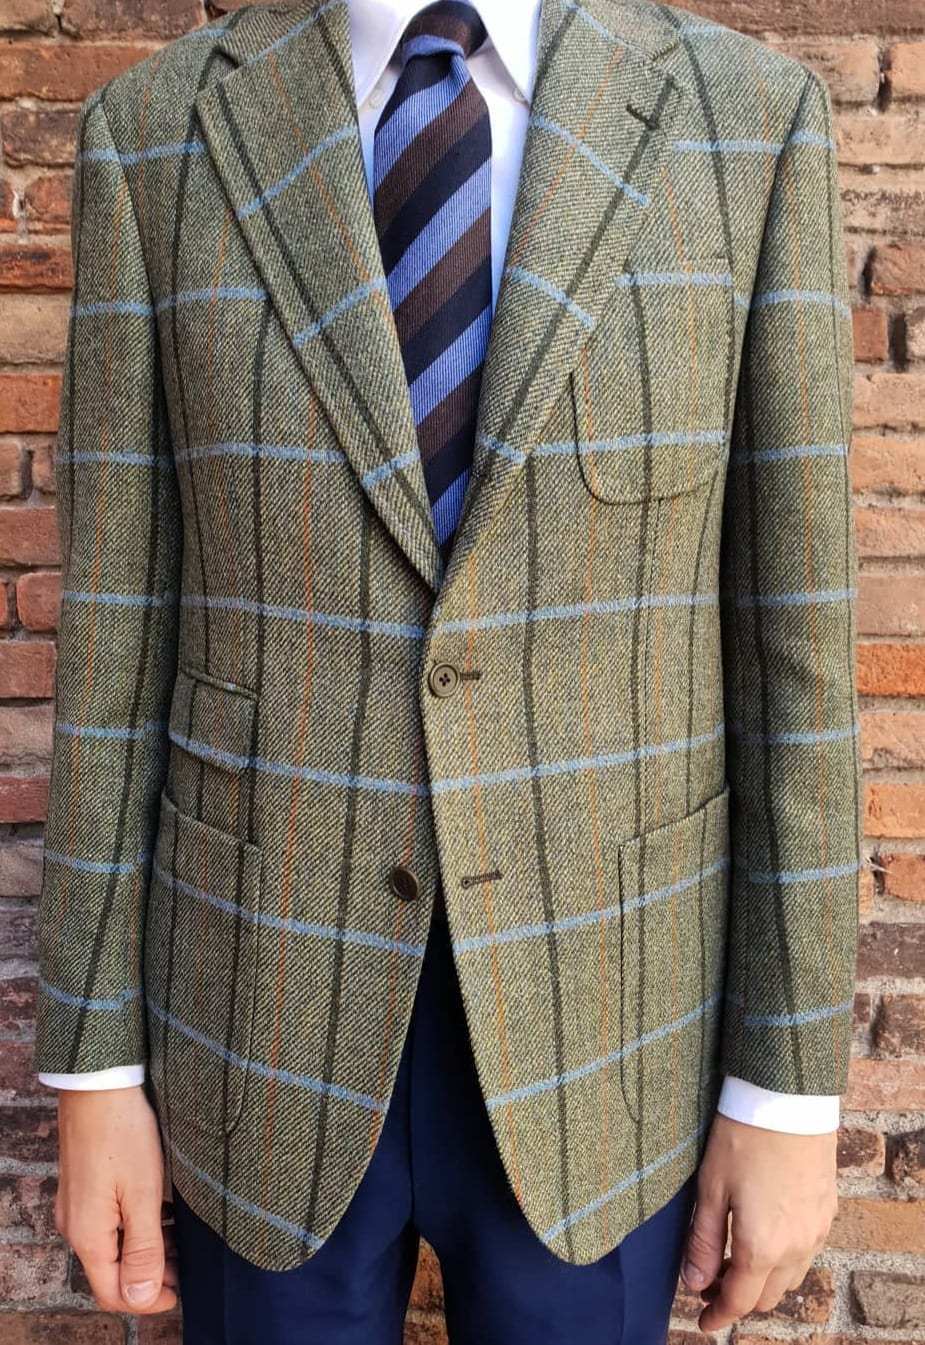 Tweed Jacket Outfit for Men 2019